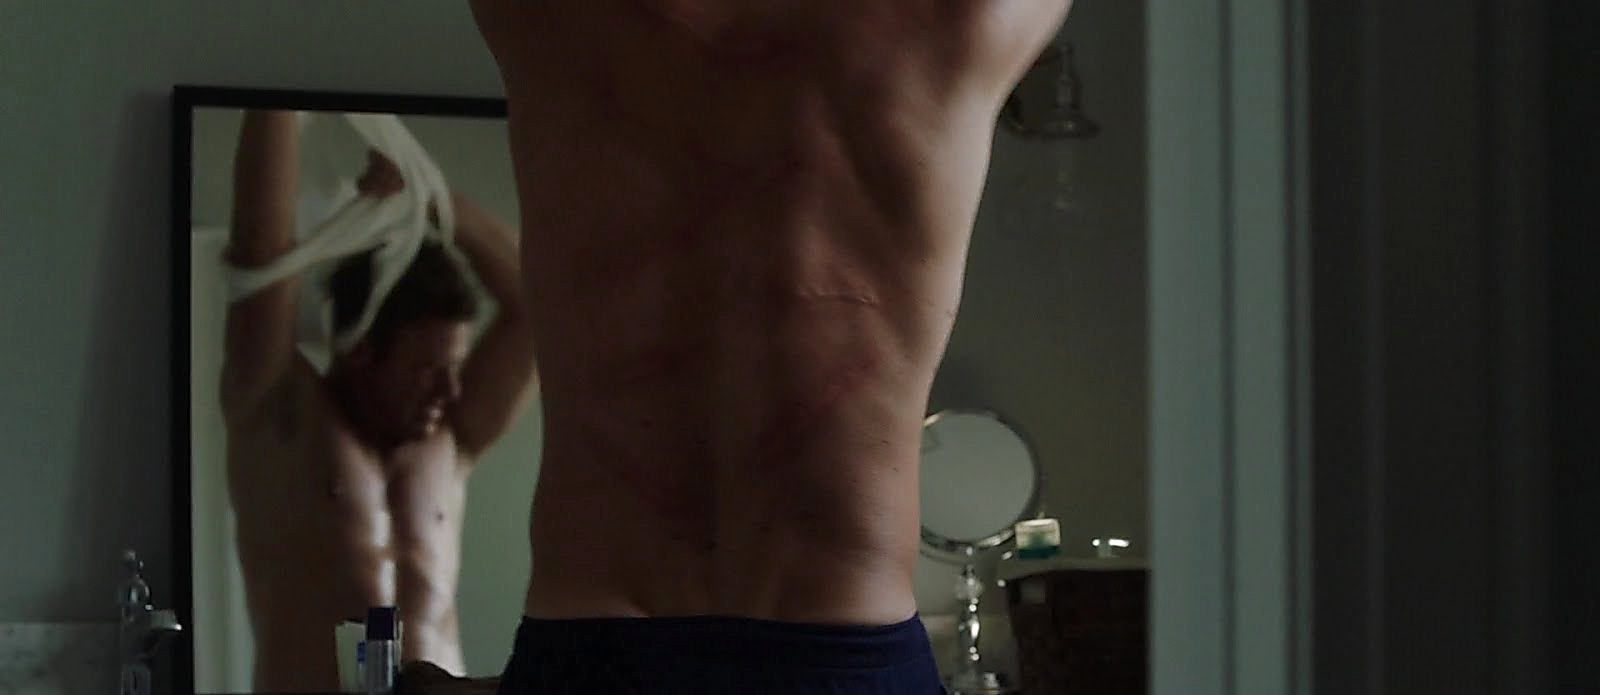 Matt Passmore sexy shirtless scene January 9, 2018, 1pm